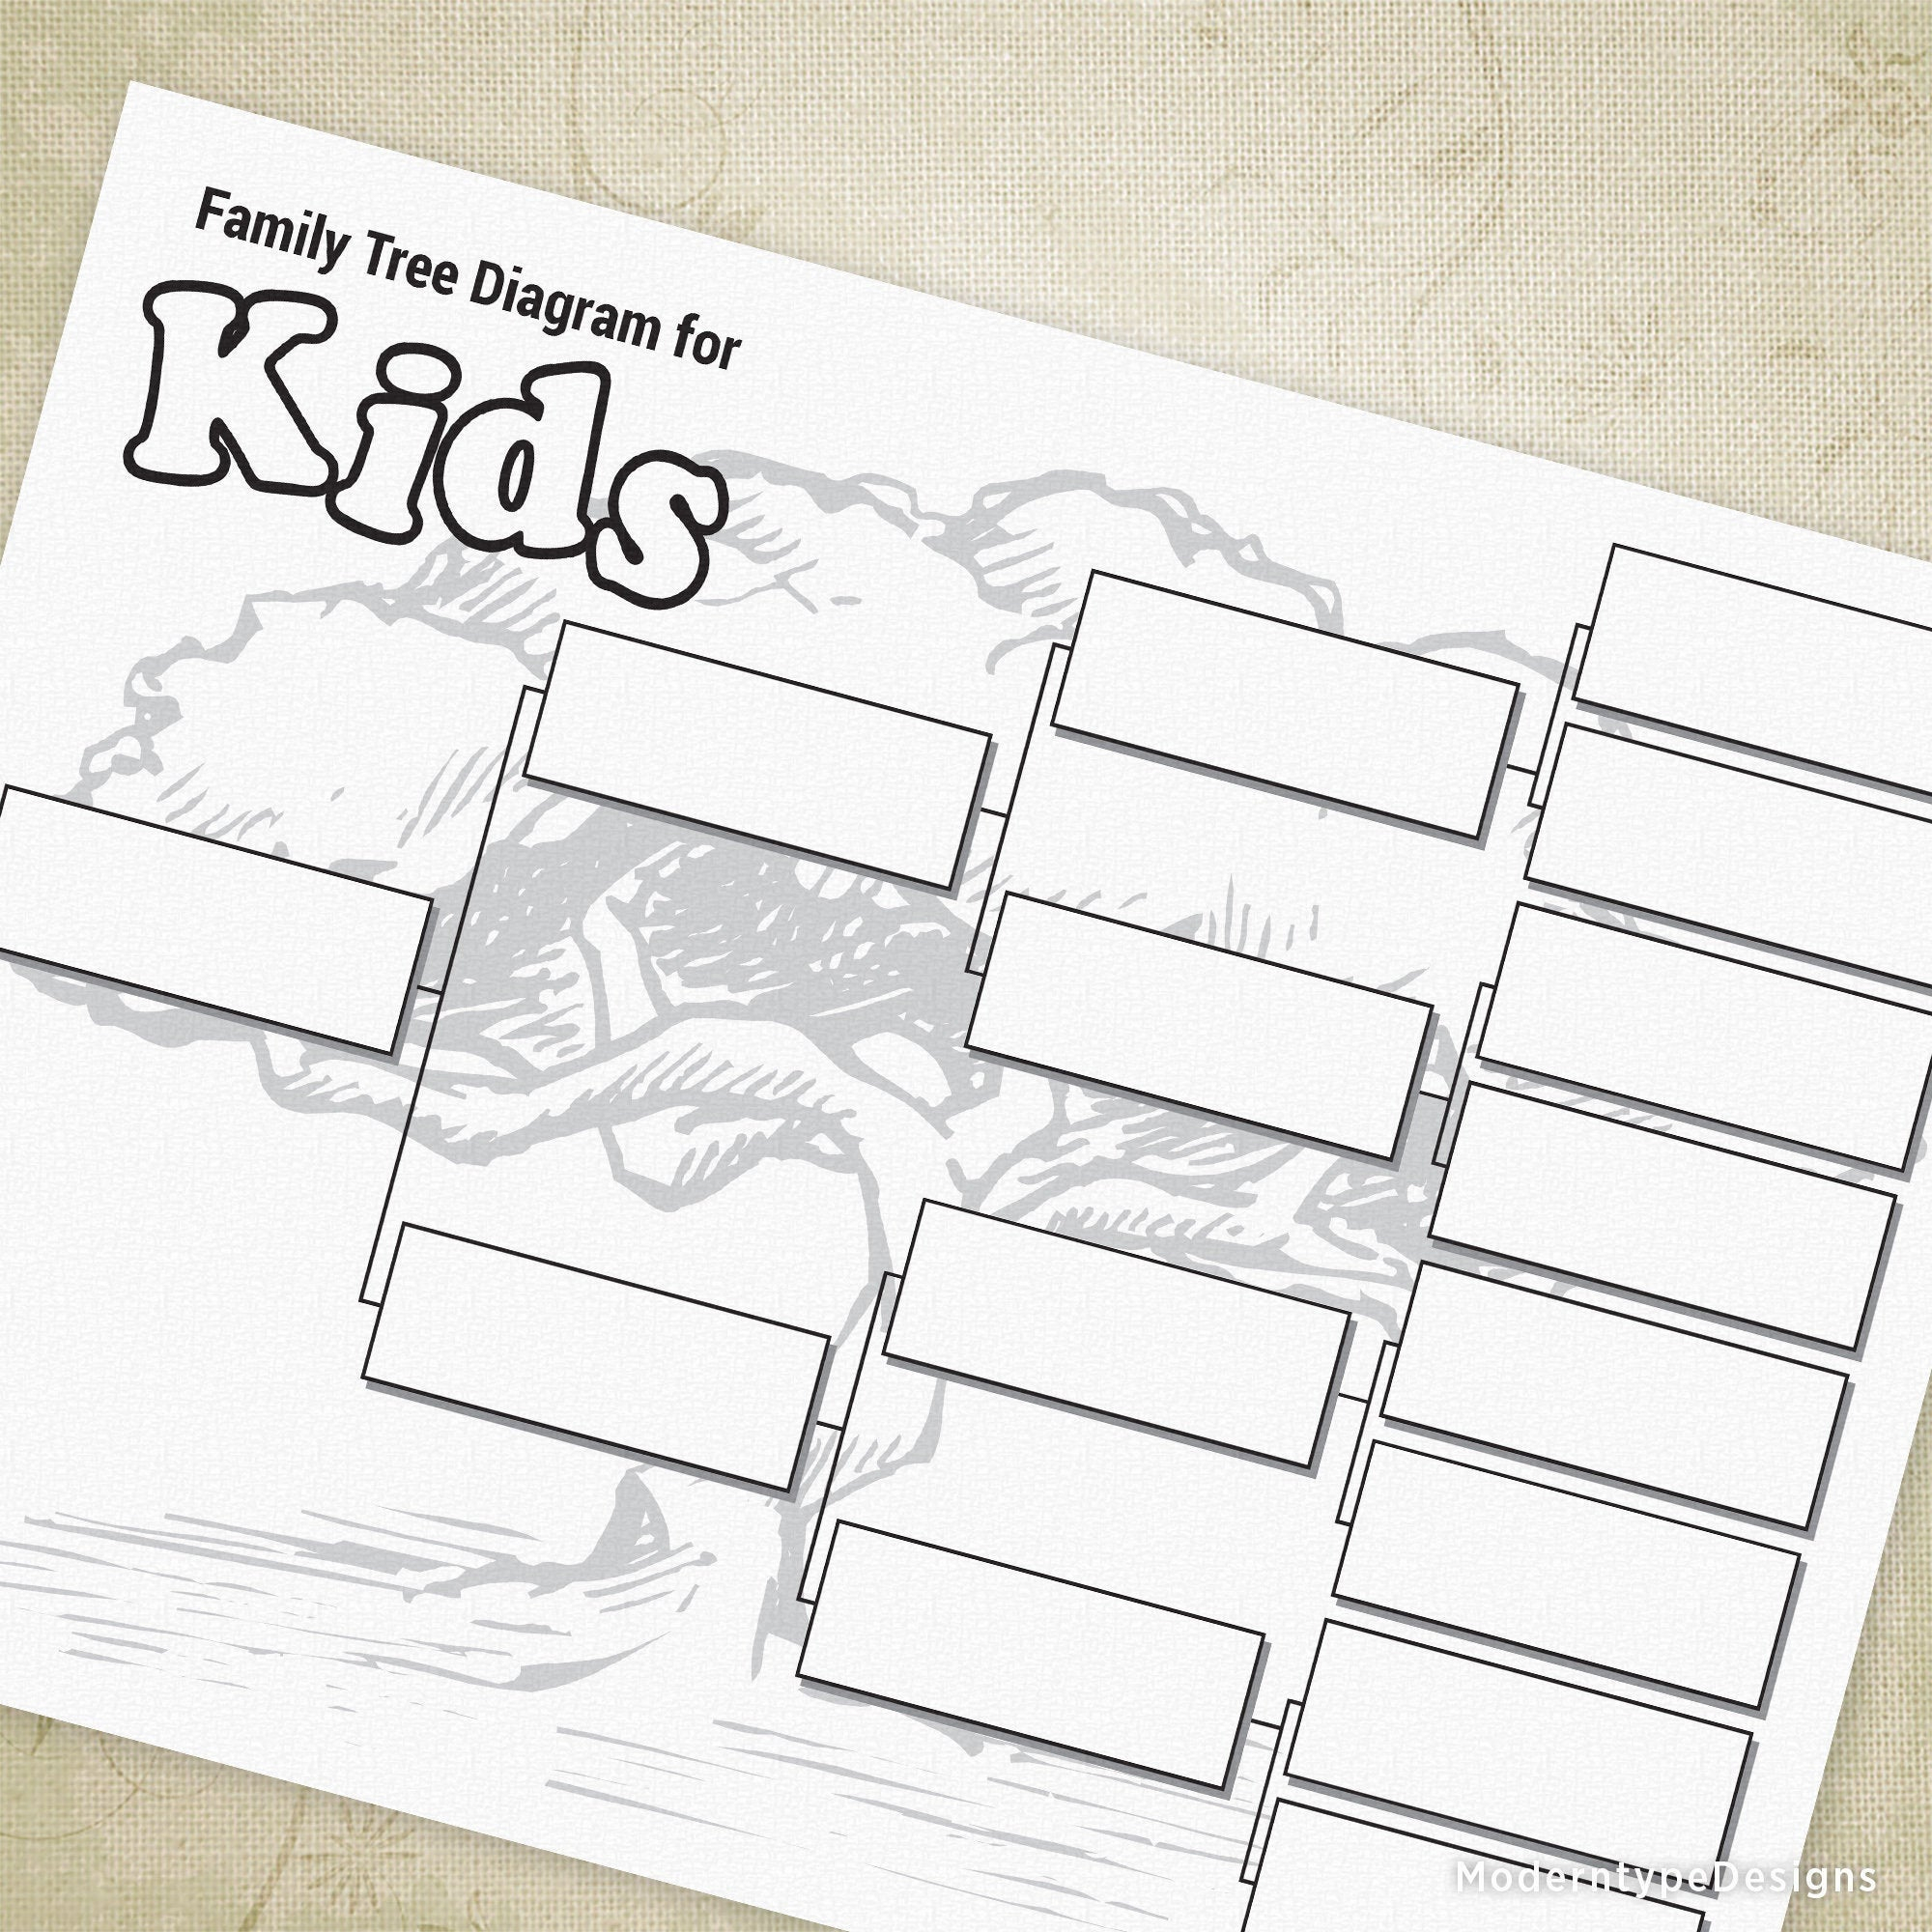 Family Tree Diagram Kids Family Tree Diagram Printable Family Tree Chart For Kids Ancestral Chart Genealogy Chart Digital File Instant Download Ftd002